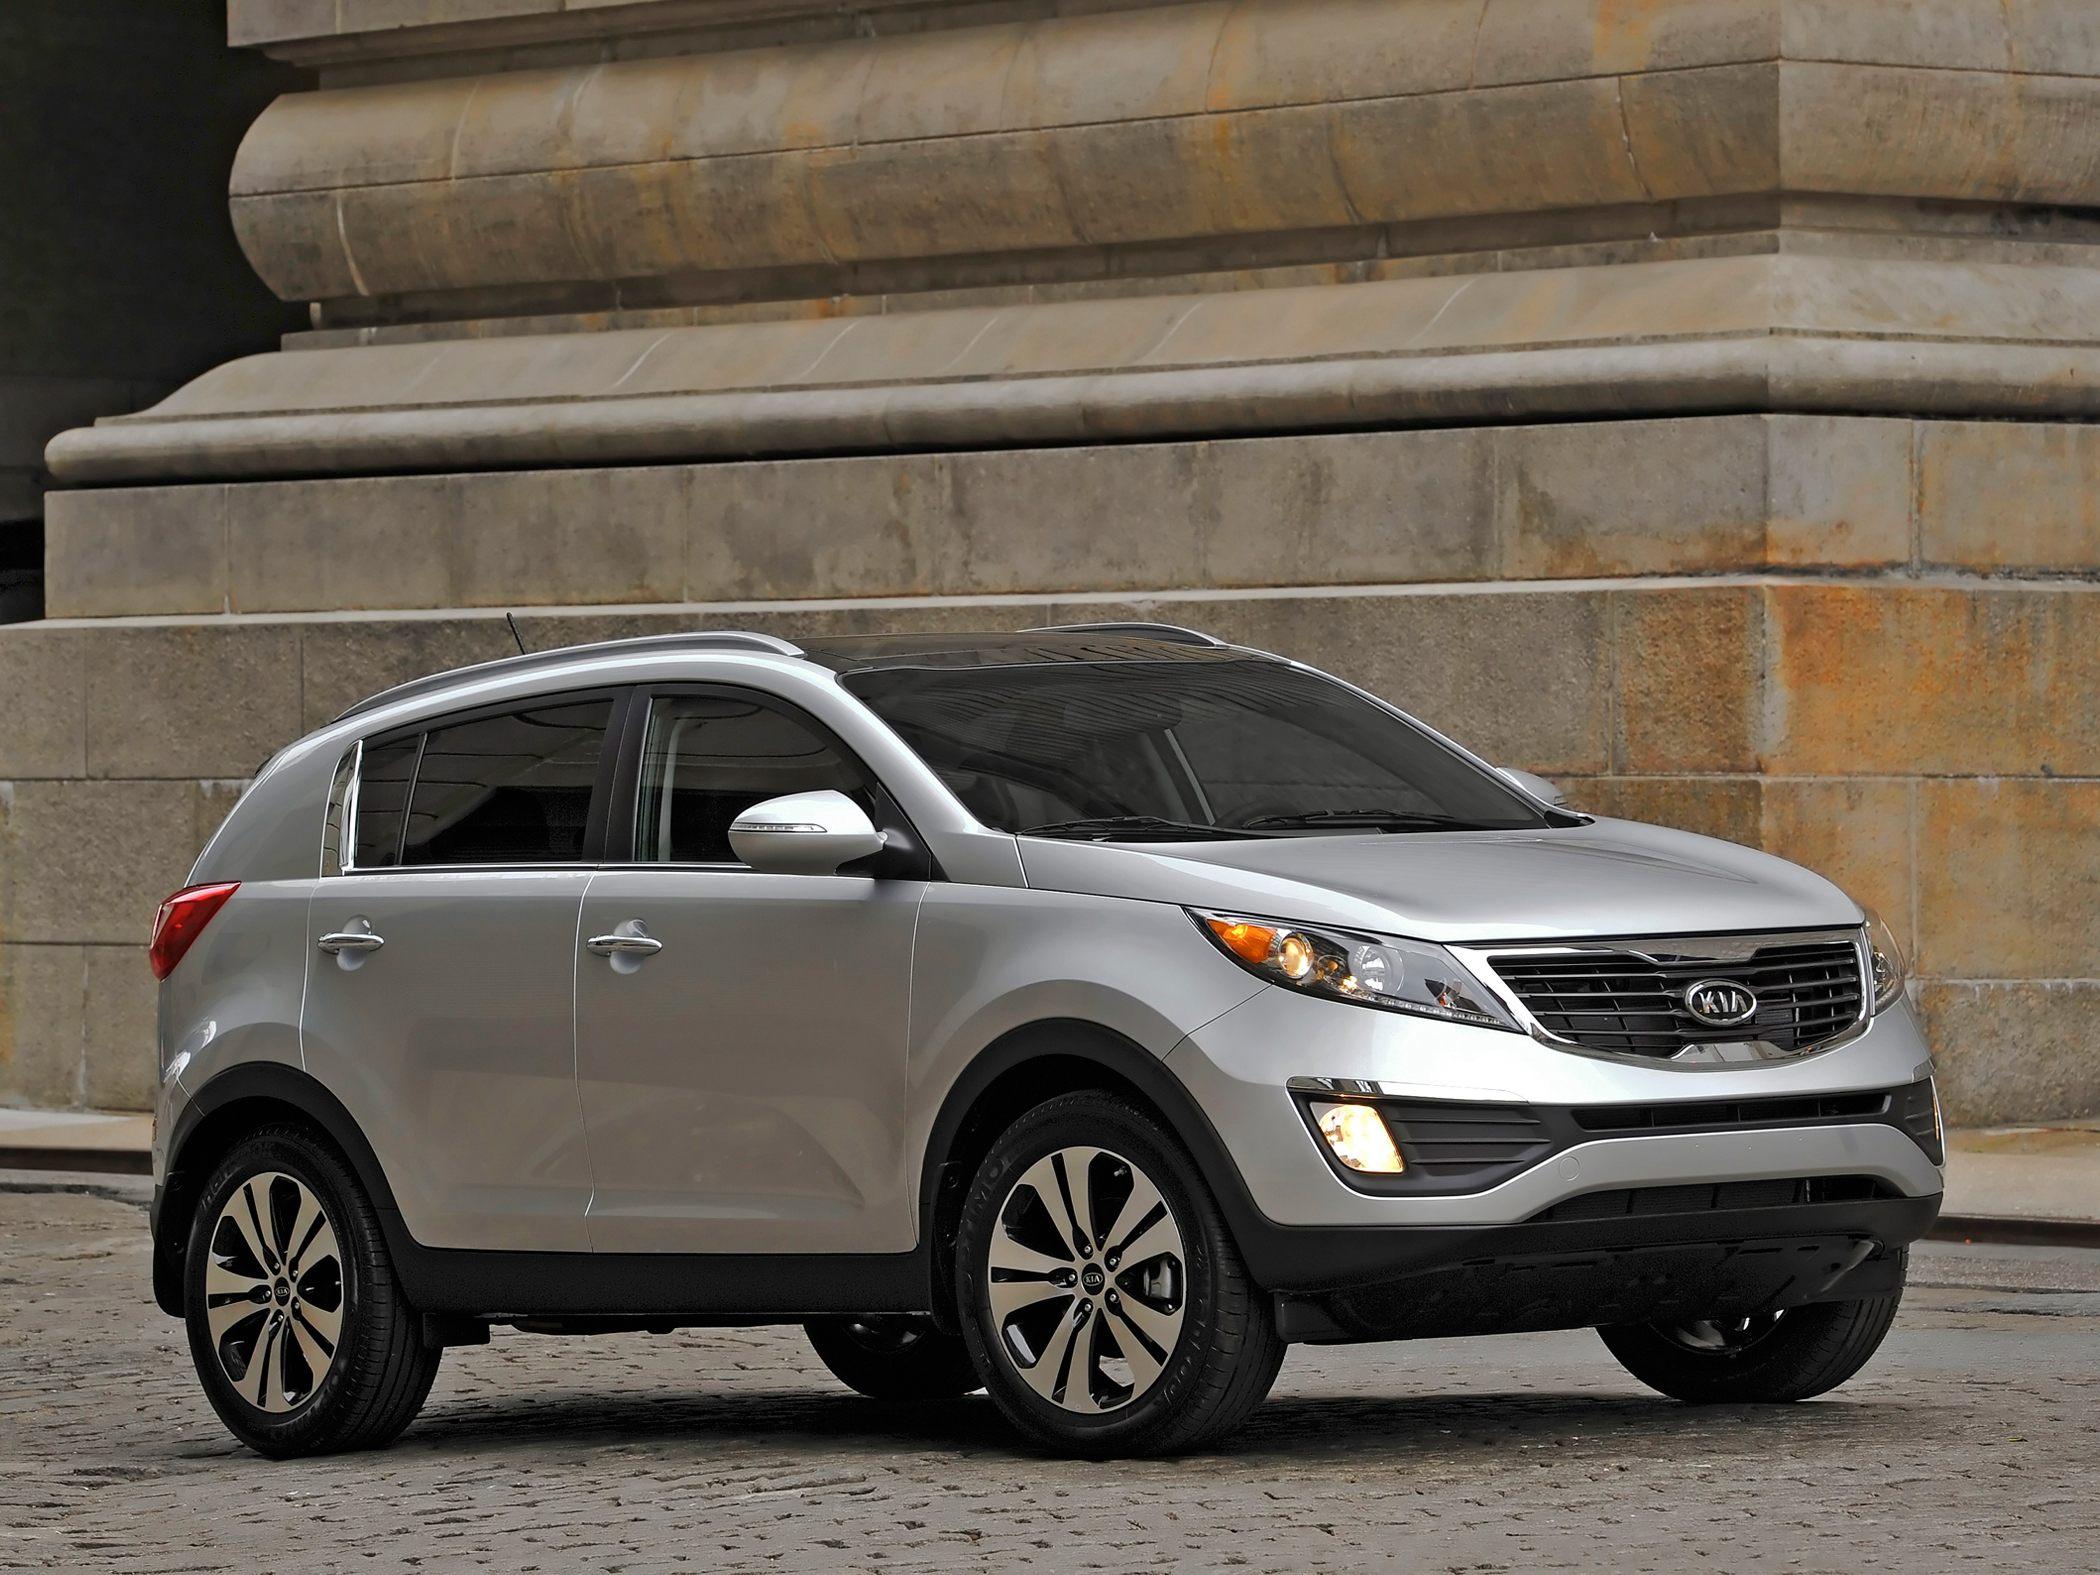 2013 kia sportage iii pictures information and specs. Black Bedroom Furniture Sets. Home Design Ideas